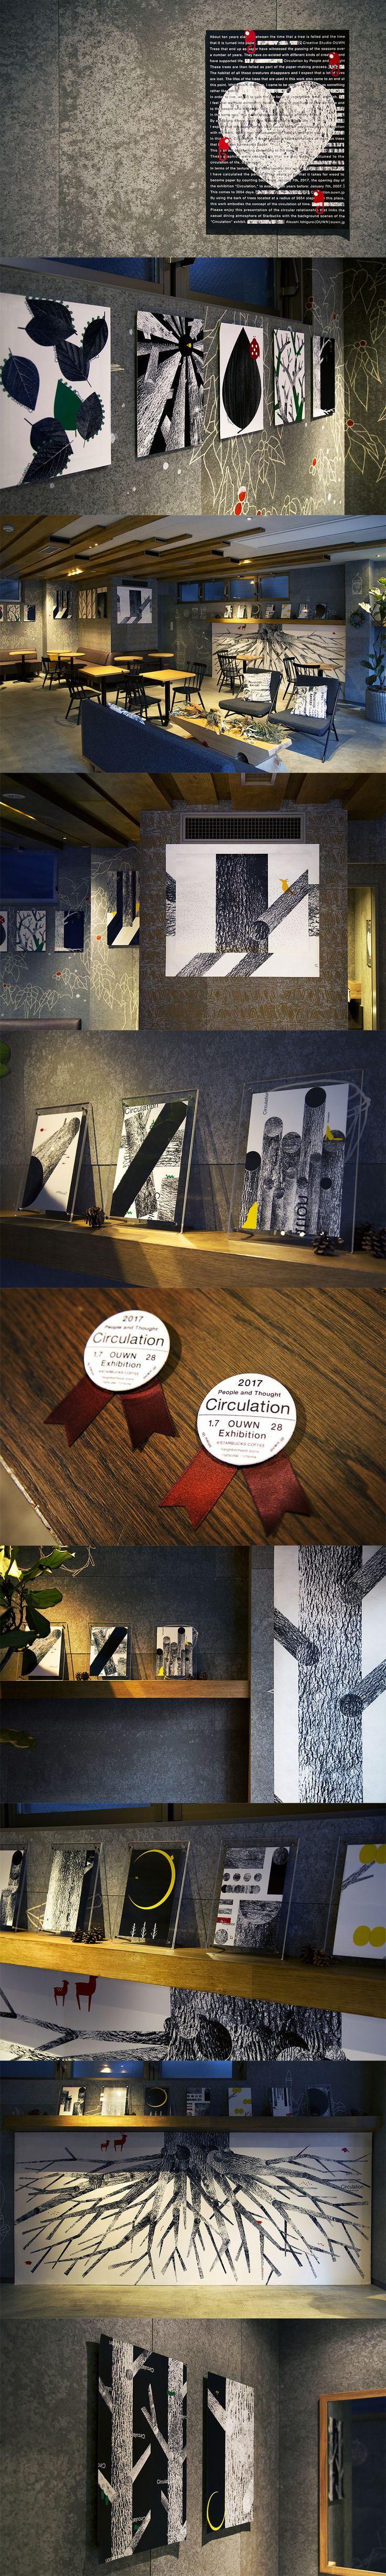 "From January 7th to 28th, 2017, we, OUWN, held an exhibition named ""Circulation"" at the Starbucks store in Hatsudai 1-chome. It was a collection of works that linked the ideas of being given life according to eating and drinking habits and making life circulate according to design. We truly appreciate the large number of visitors we received."